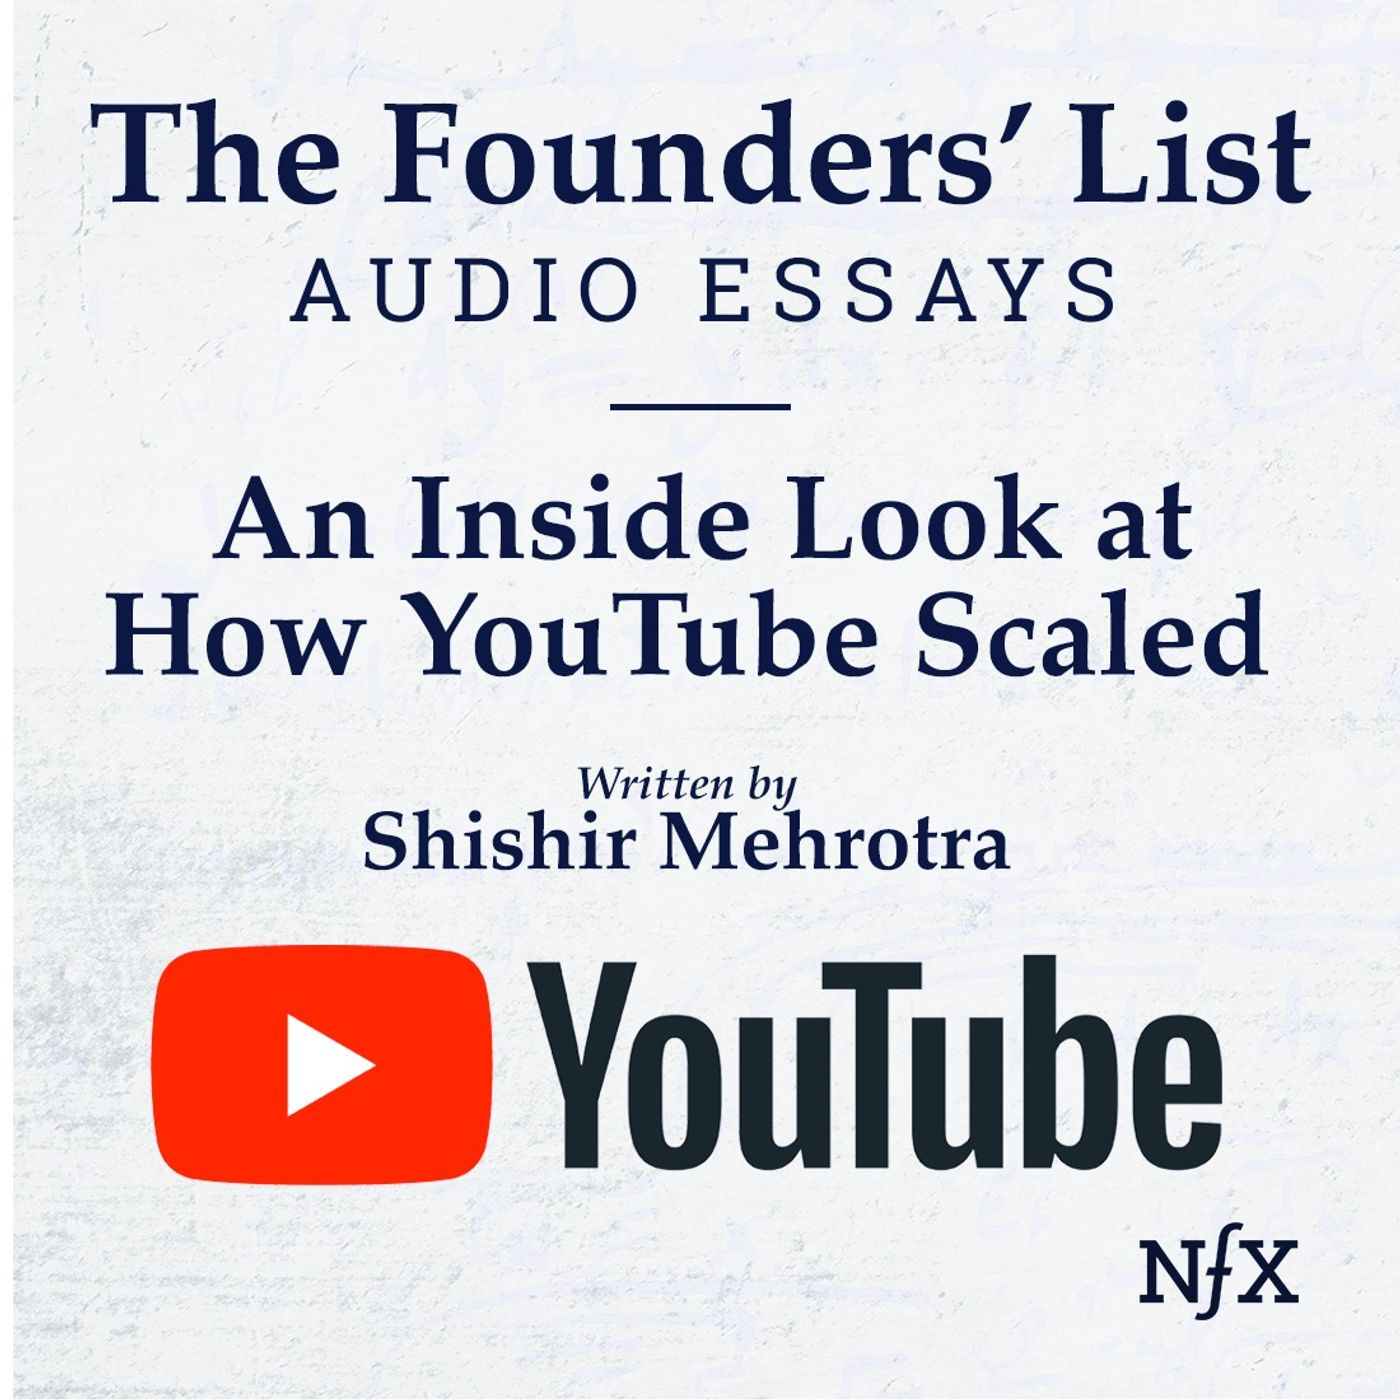 The Founders' List: Shishir Mehrotra with an Inside Look at How YouTube Scaled (Rituals for Hypergrowth)